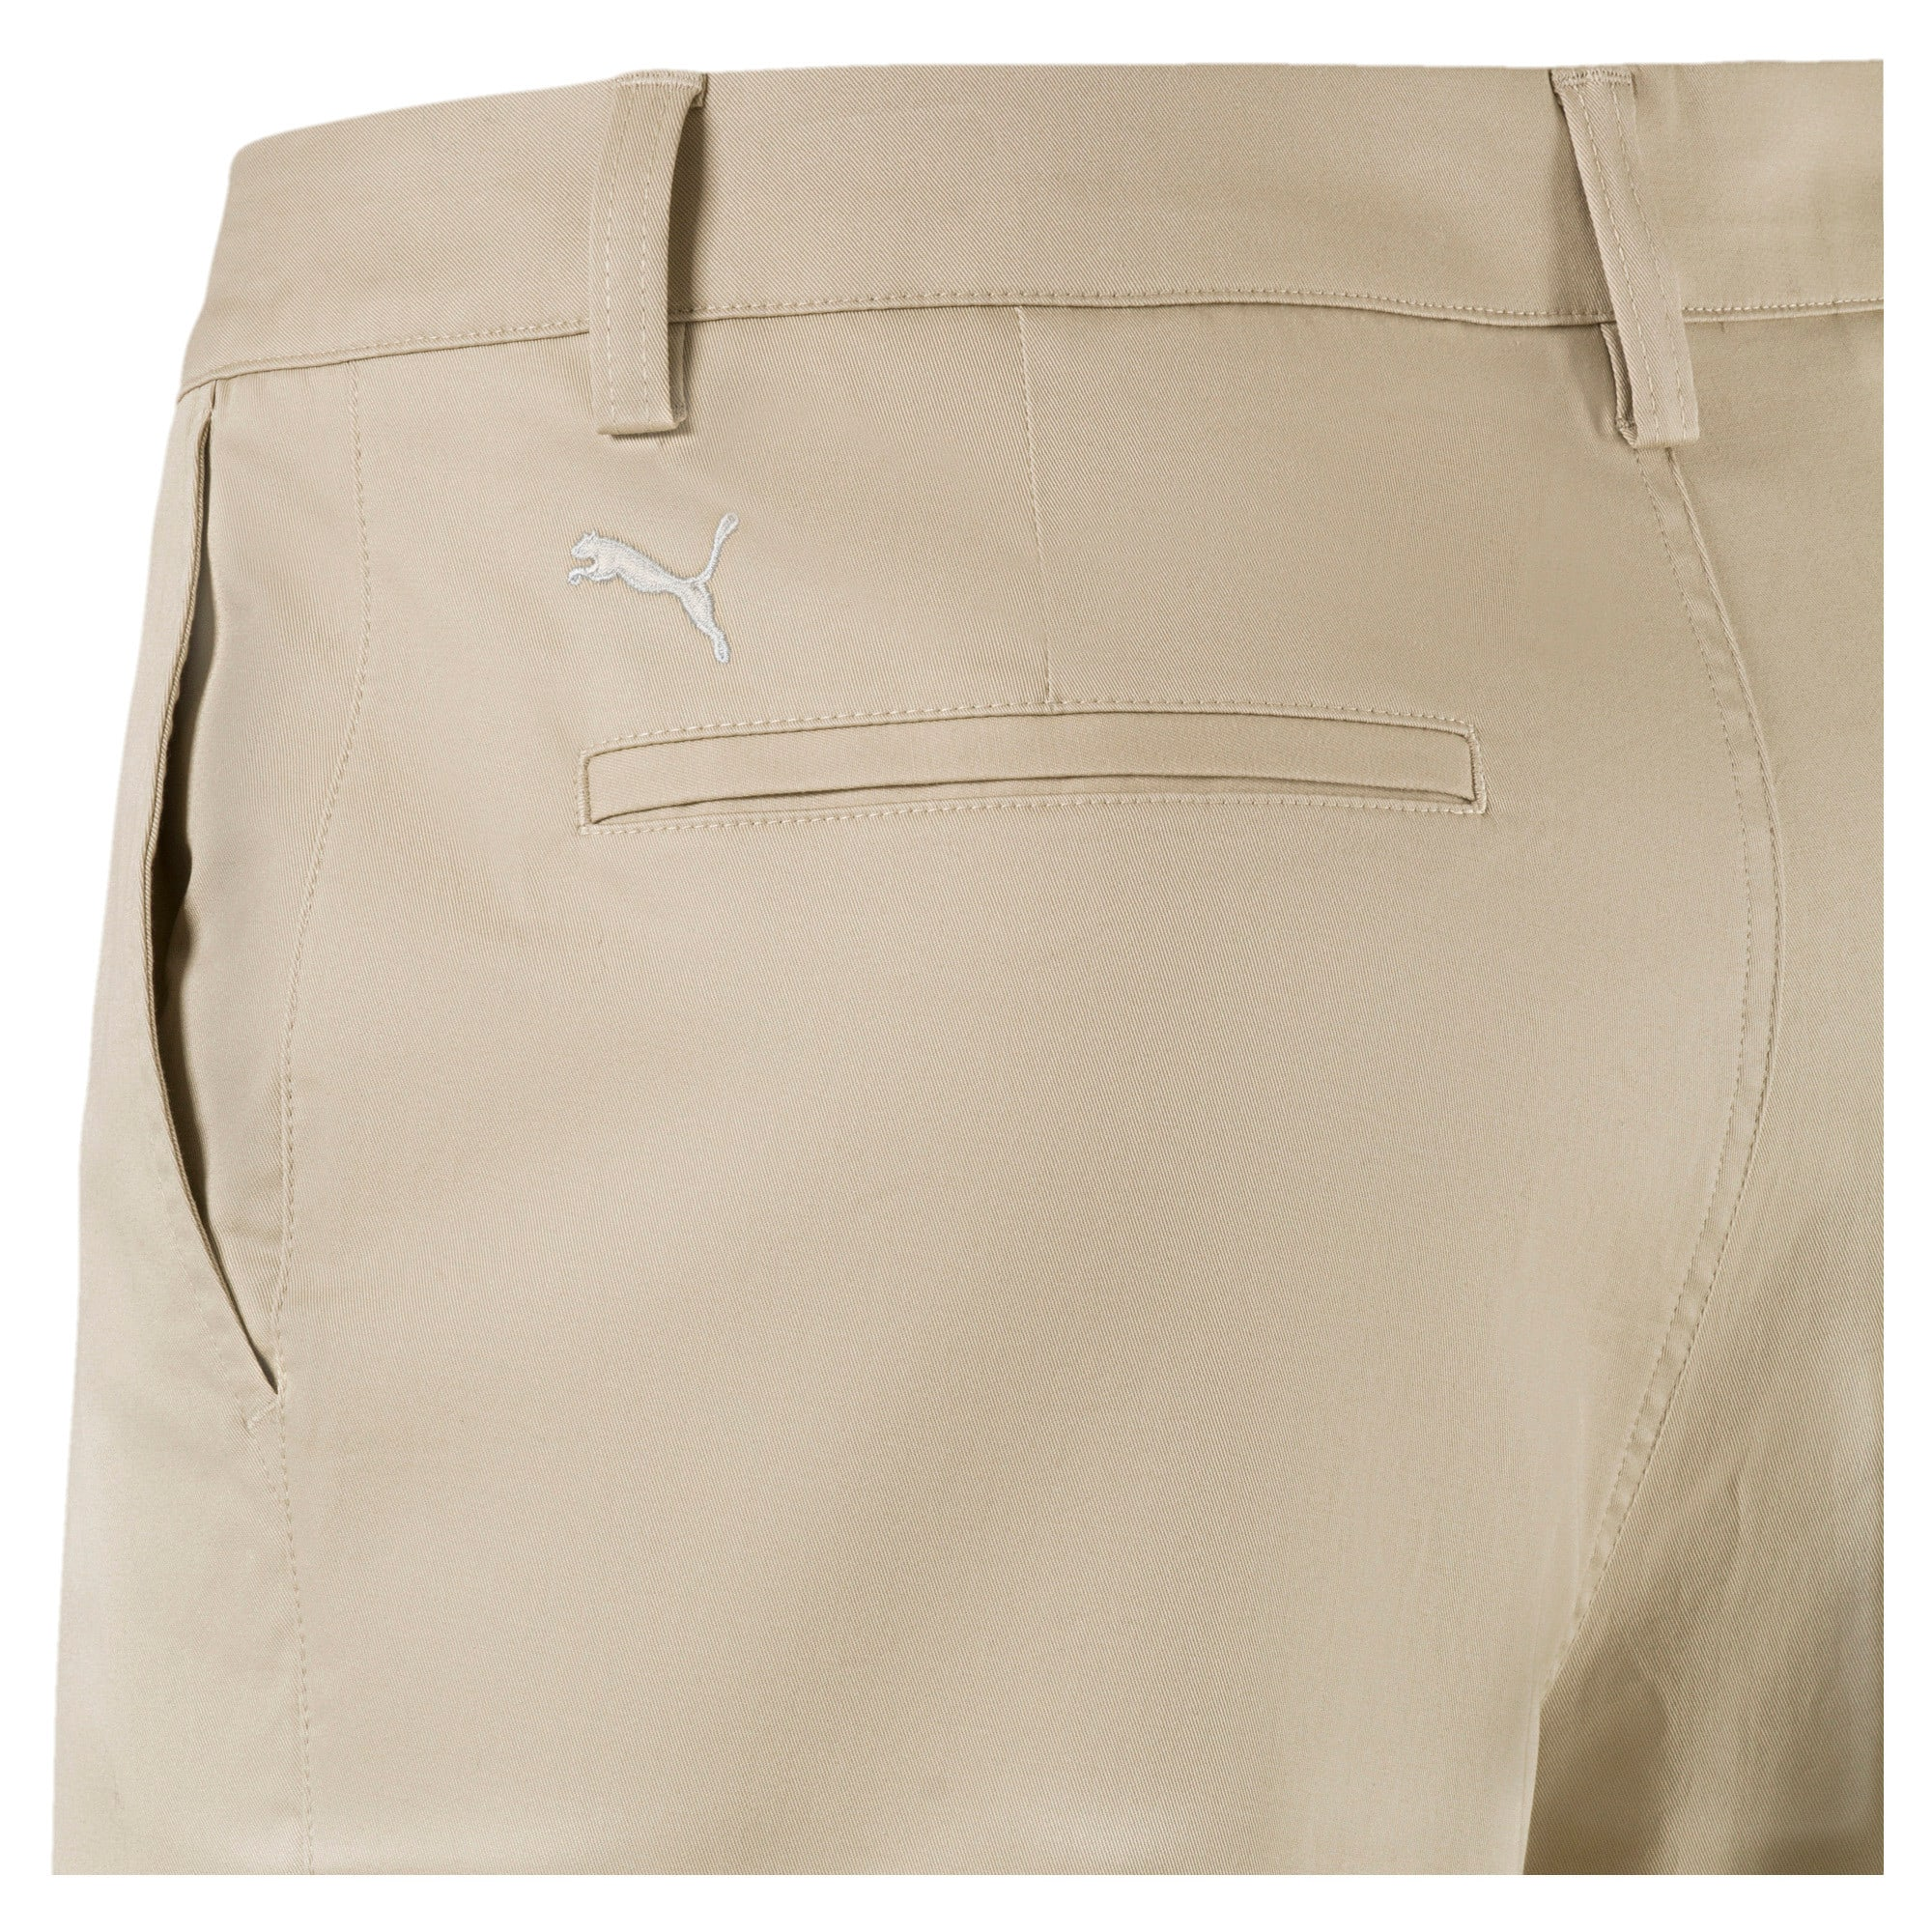 Thumbnail 4 of Golf Men's Tailored Chino Shorts, White Pepper, medium-IND